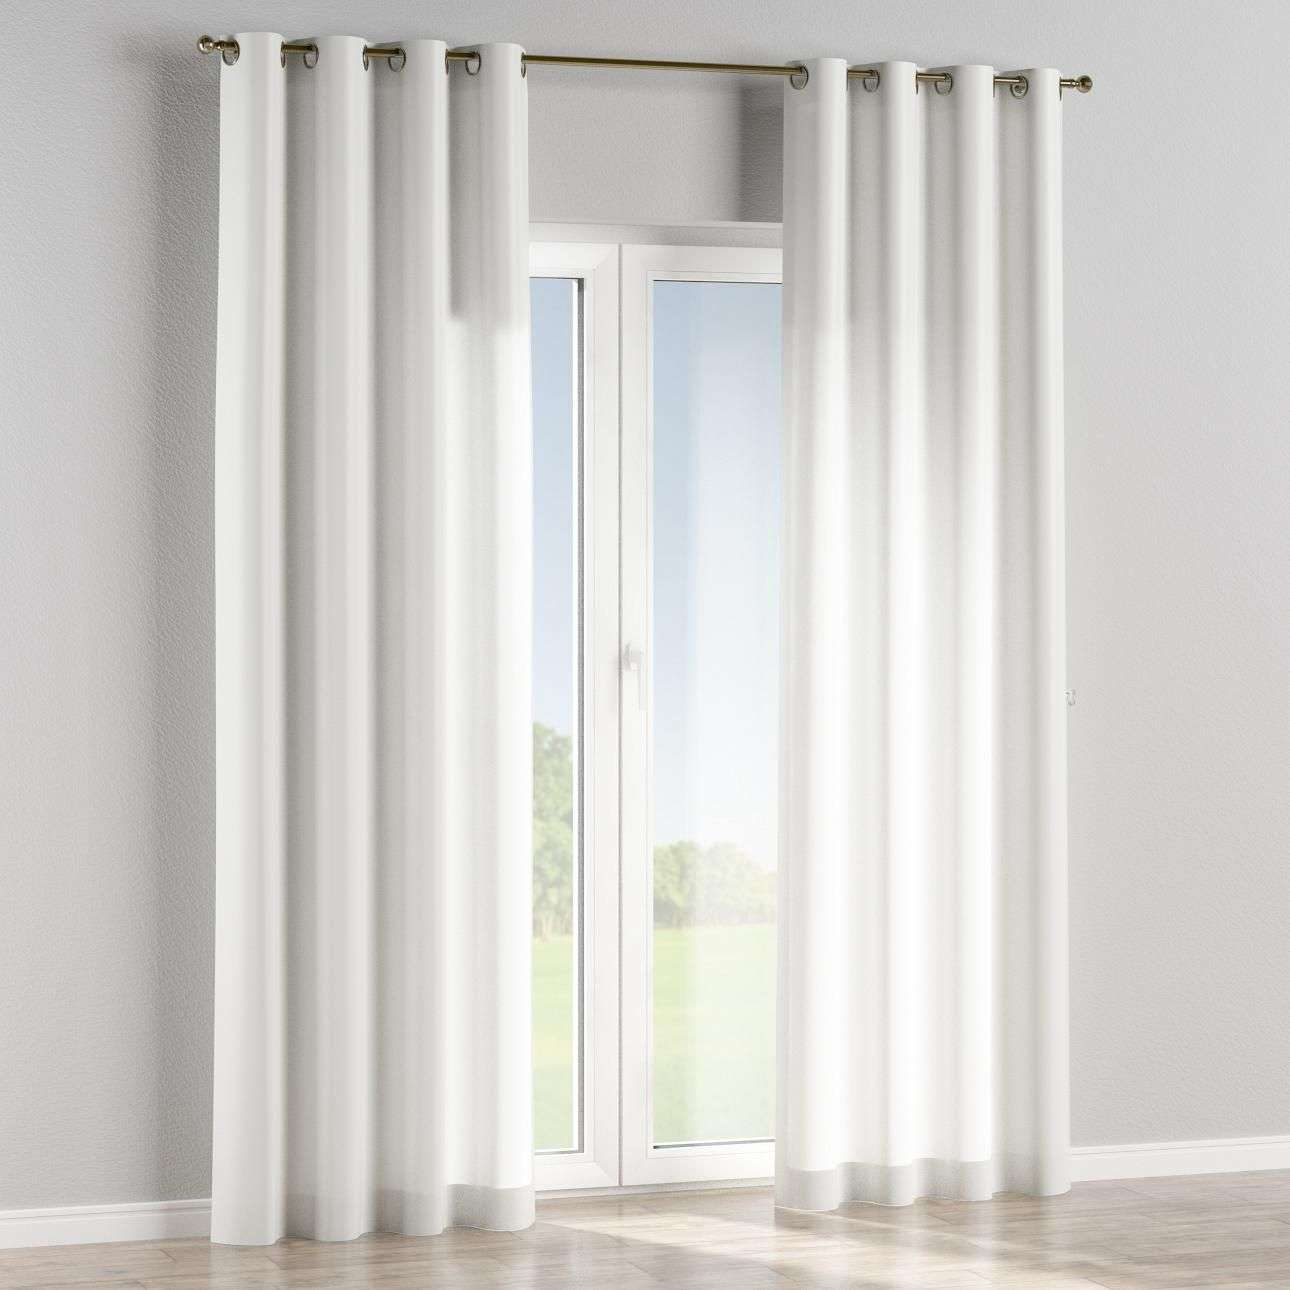 Eyelet curtains in collection Victoria, fabric: 130-09